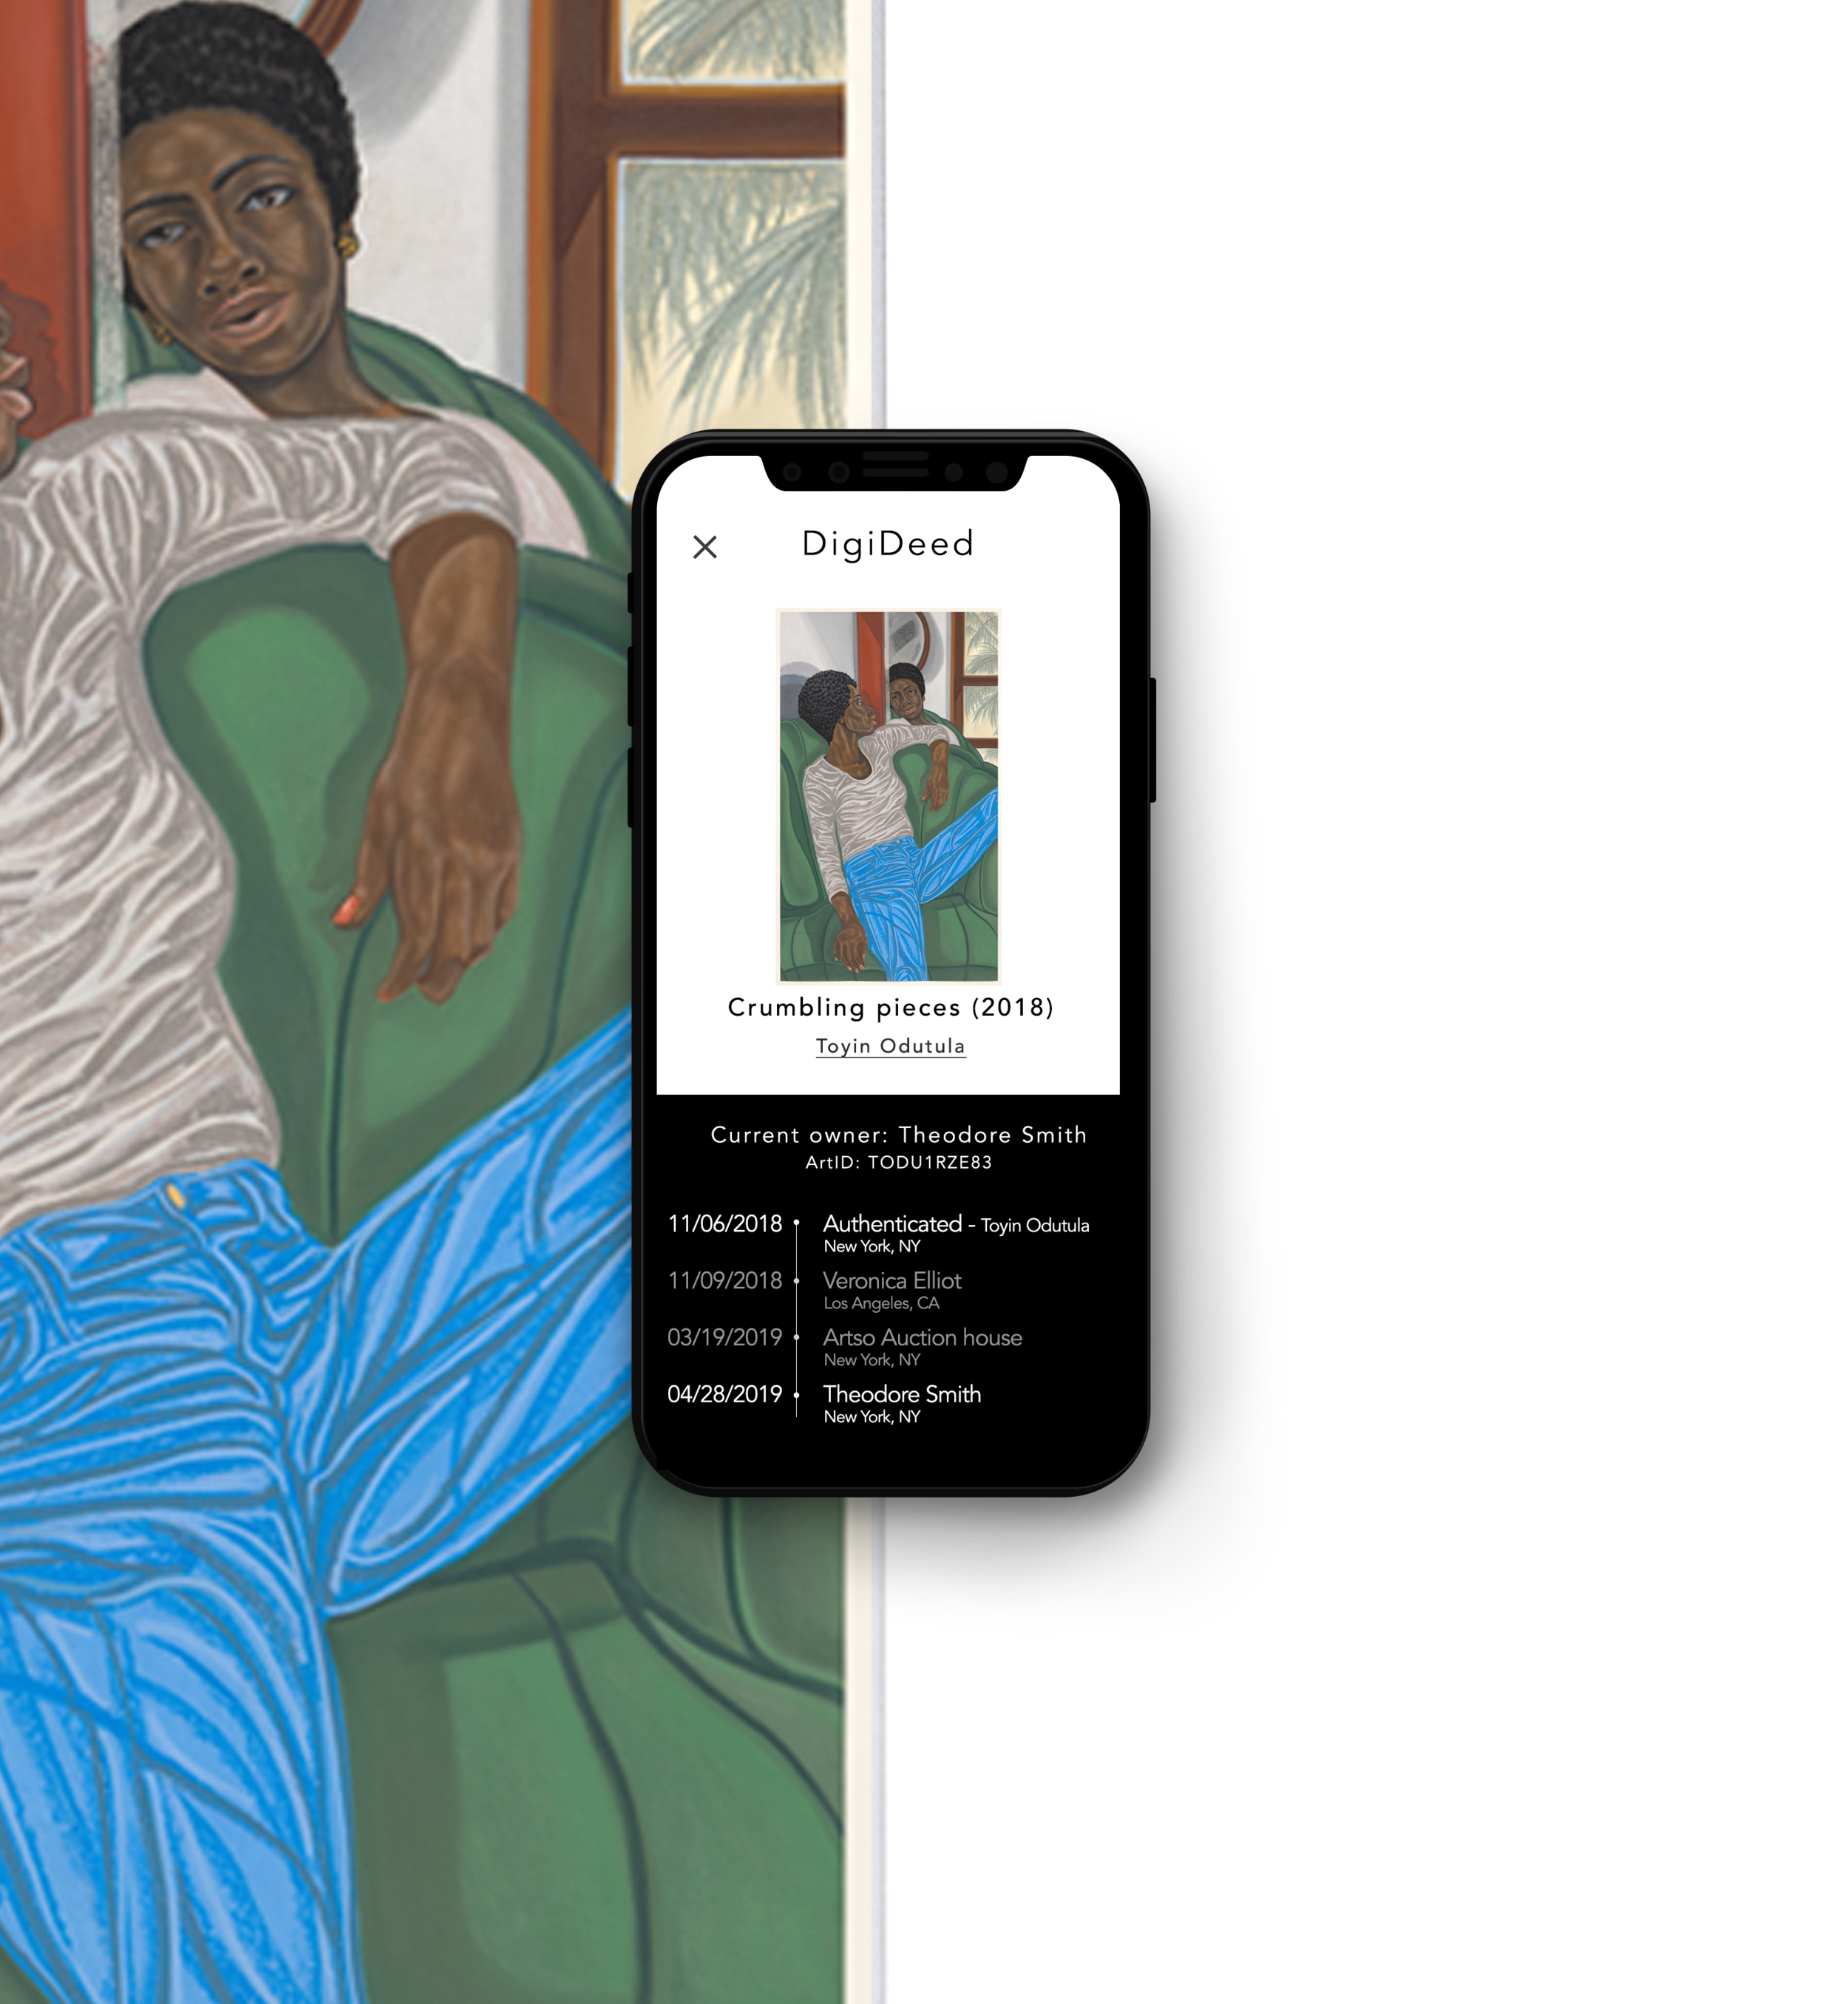 Invisible to the eye. - Hidden behind the canvas lives DigiDeed; a razor thin, layer of tech which allows collectors to confirm authenticity and view a ledger of ownership, all with their smartphone.get the app.